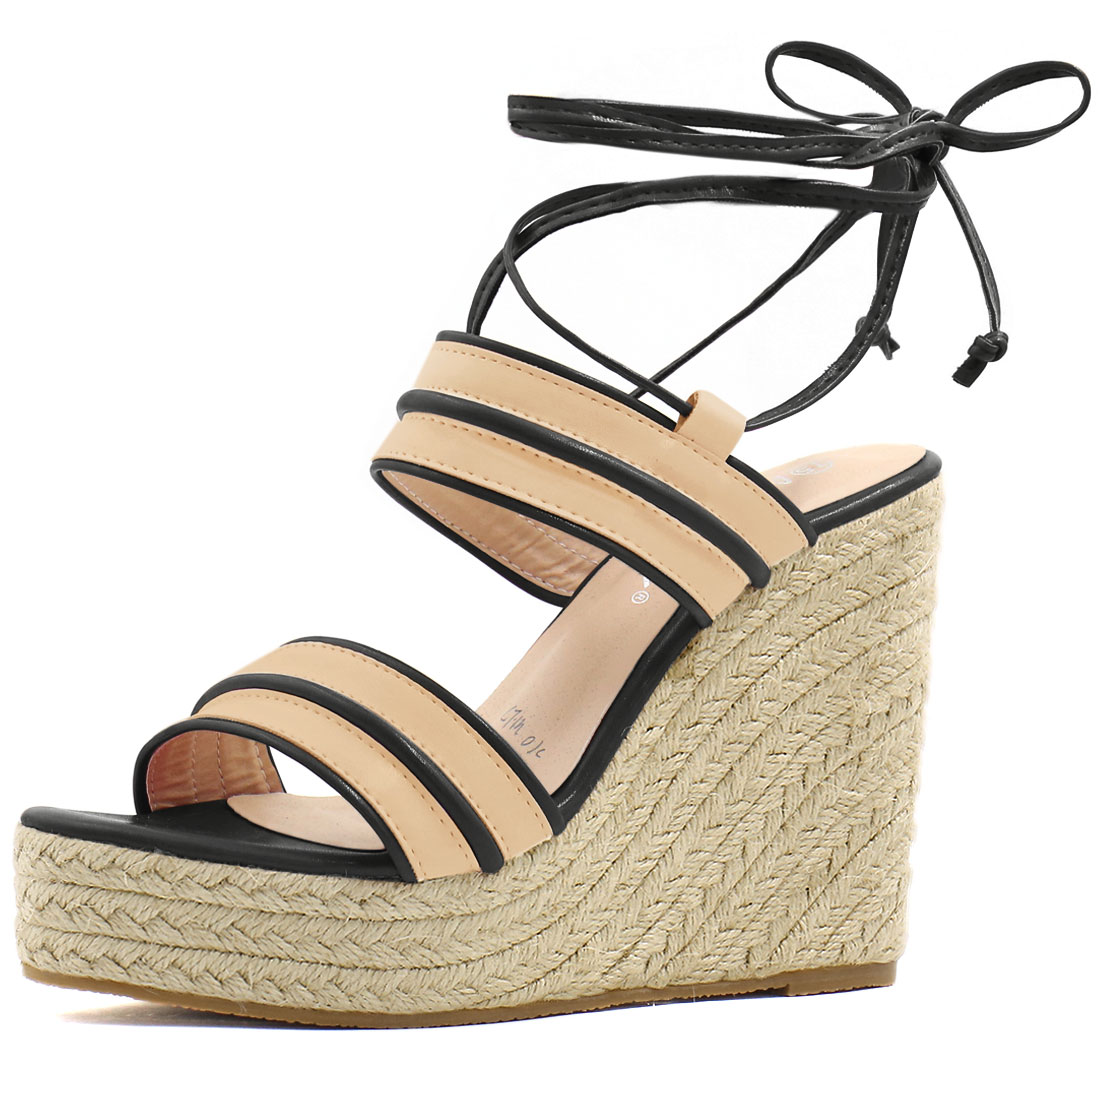 Women Striped Ankle Tie Espadrille Wedge Sandals Apricot Black US 6.5